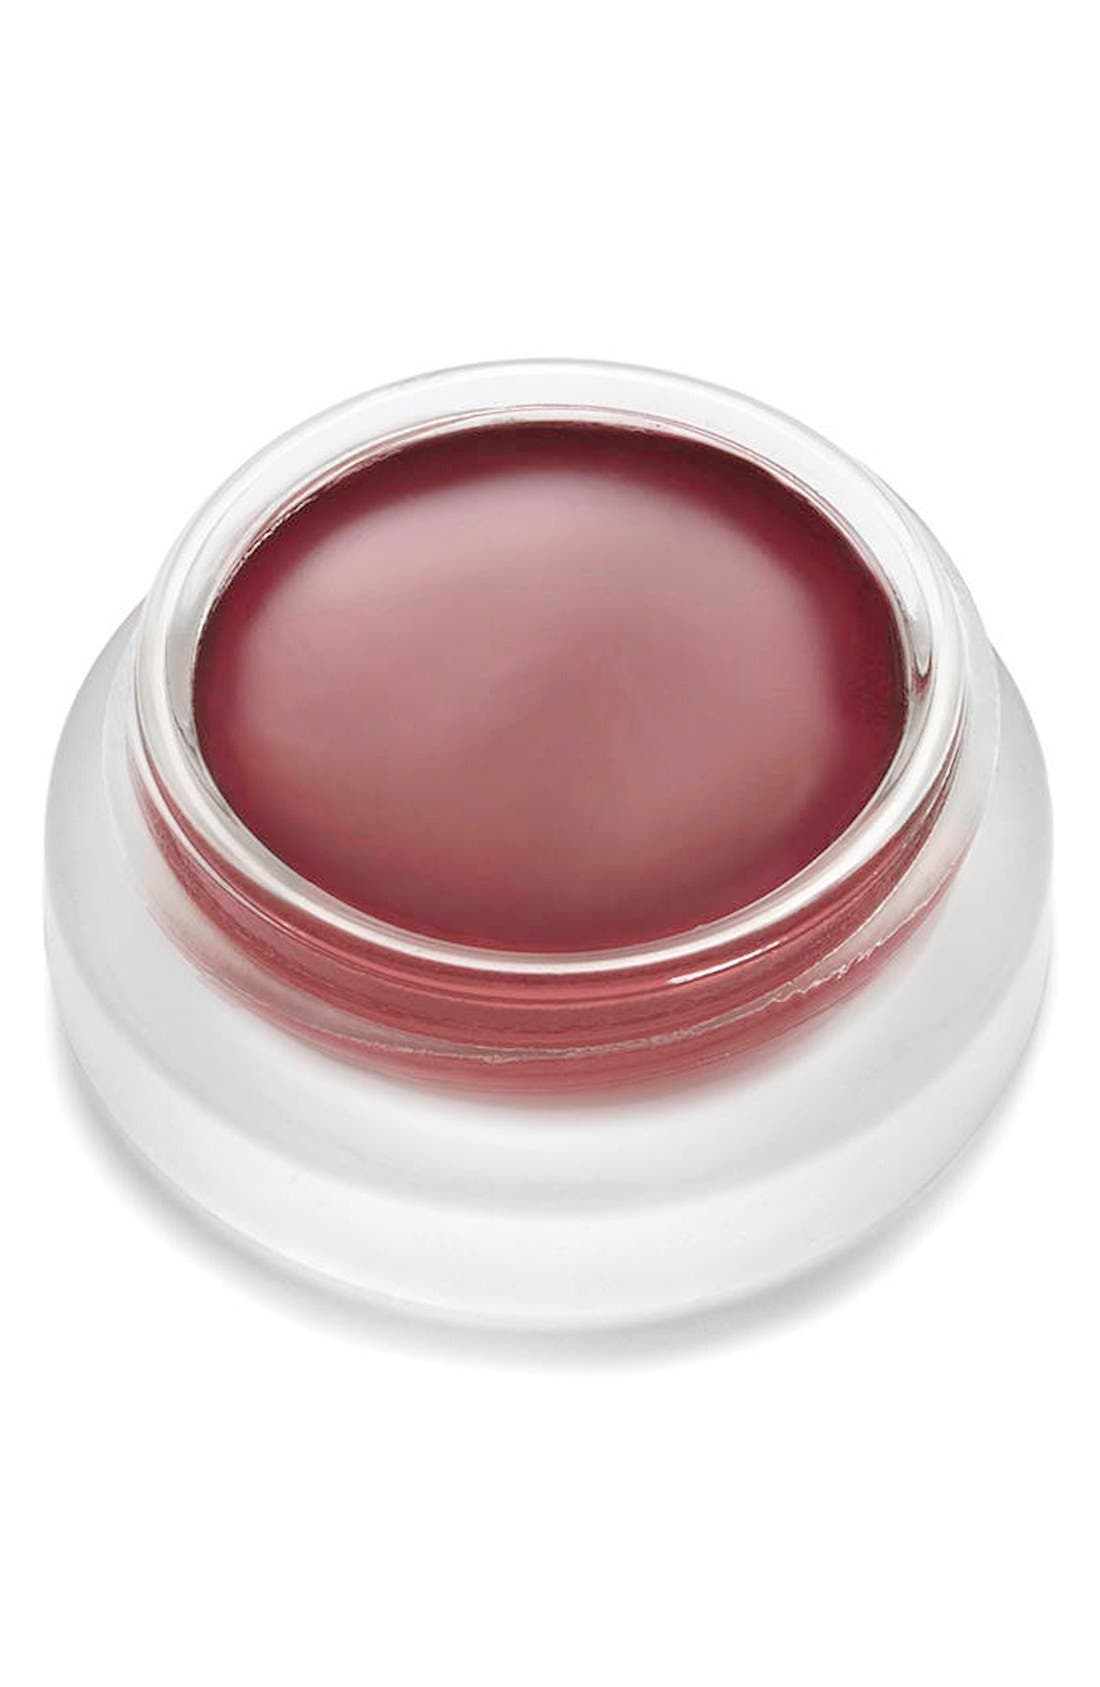 RMS Beauty Lip2Cheek Lip & Cheek Color